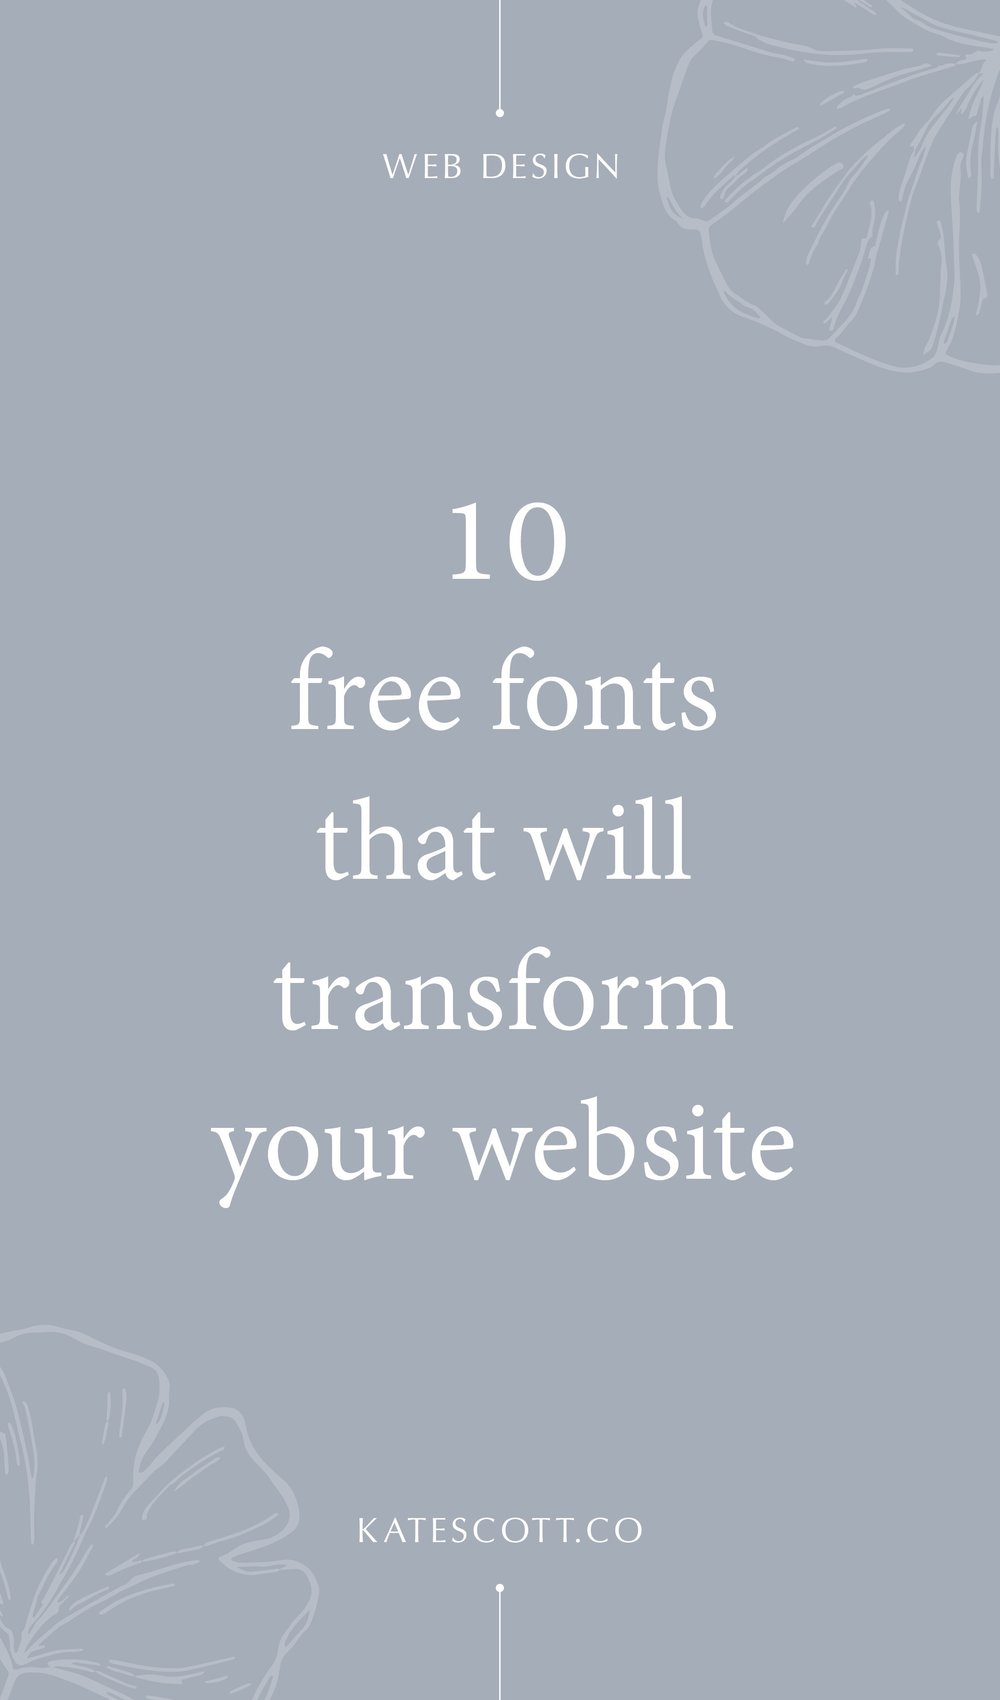 10 Free Fonts That Will Transform Your Website Free font